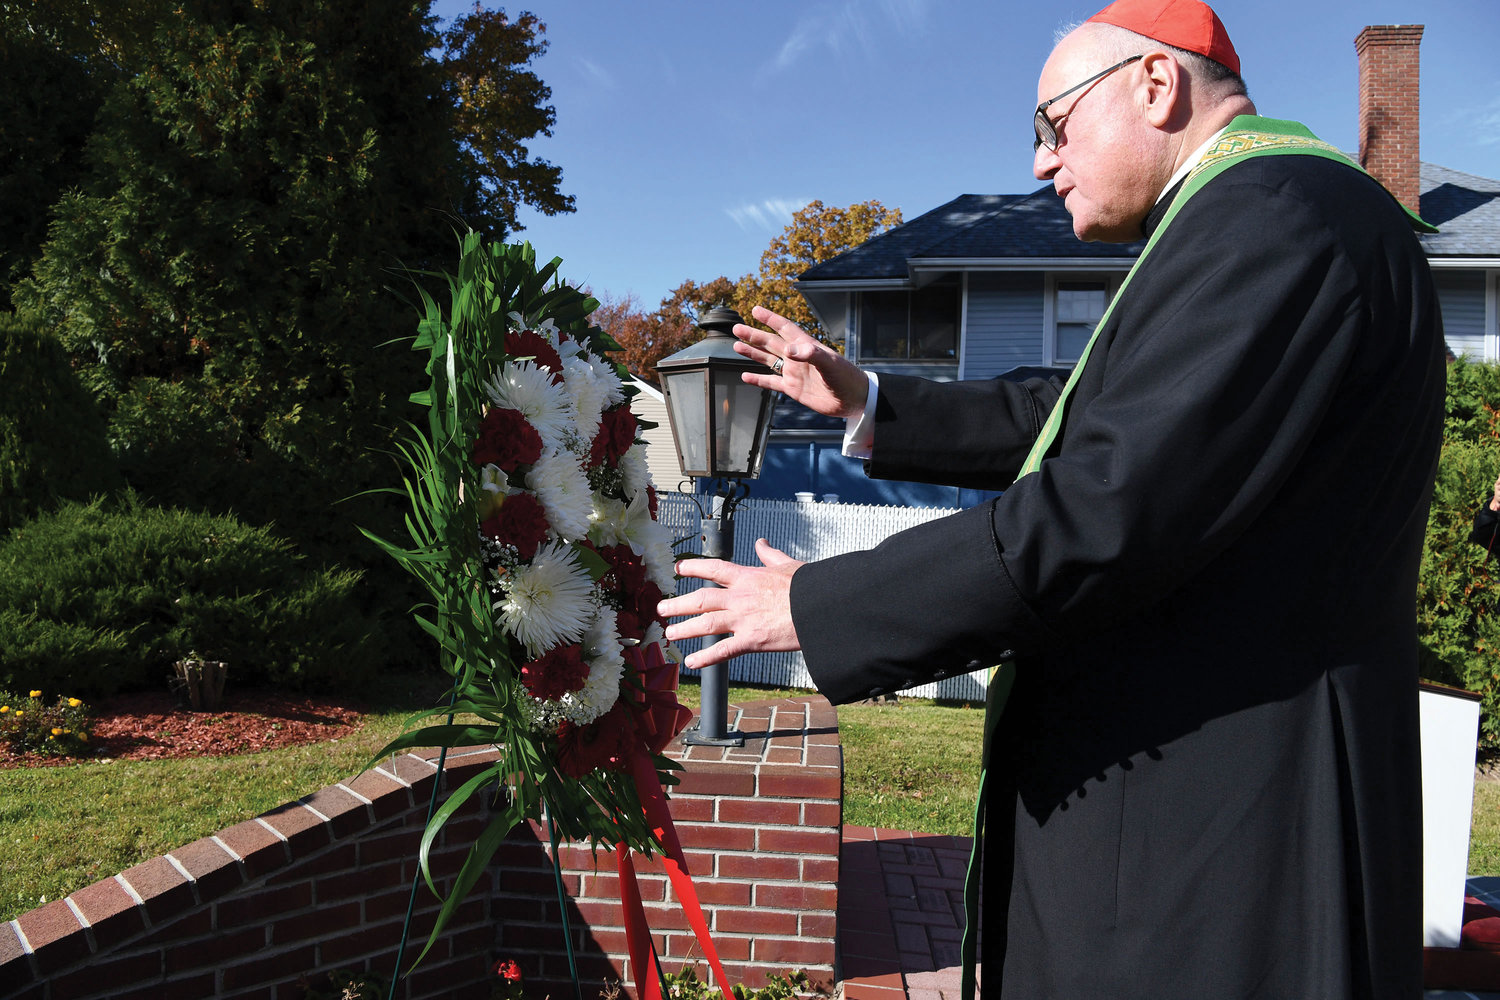 Cardinal Dolan pauses at the wreath next to St. Clare's 9/11 memorial dedicated to the 29 parishioners who died at the World Trade Center on Sept. 11, 2001, during his visit to the Staten Island parish where he led a prayer service for St. Clare School students and celebrated Mass on the eve of All Saints Day with religious education students.